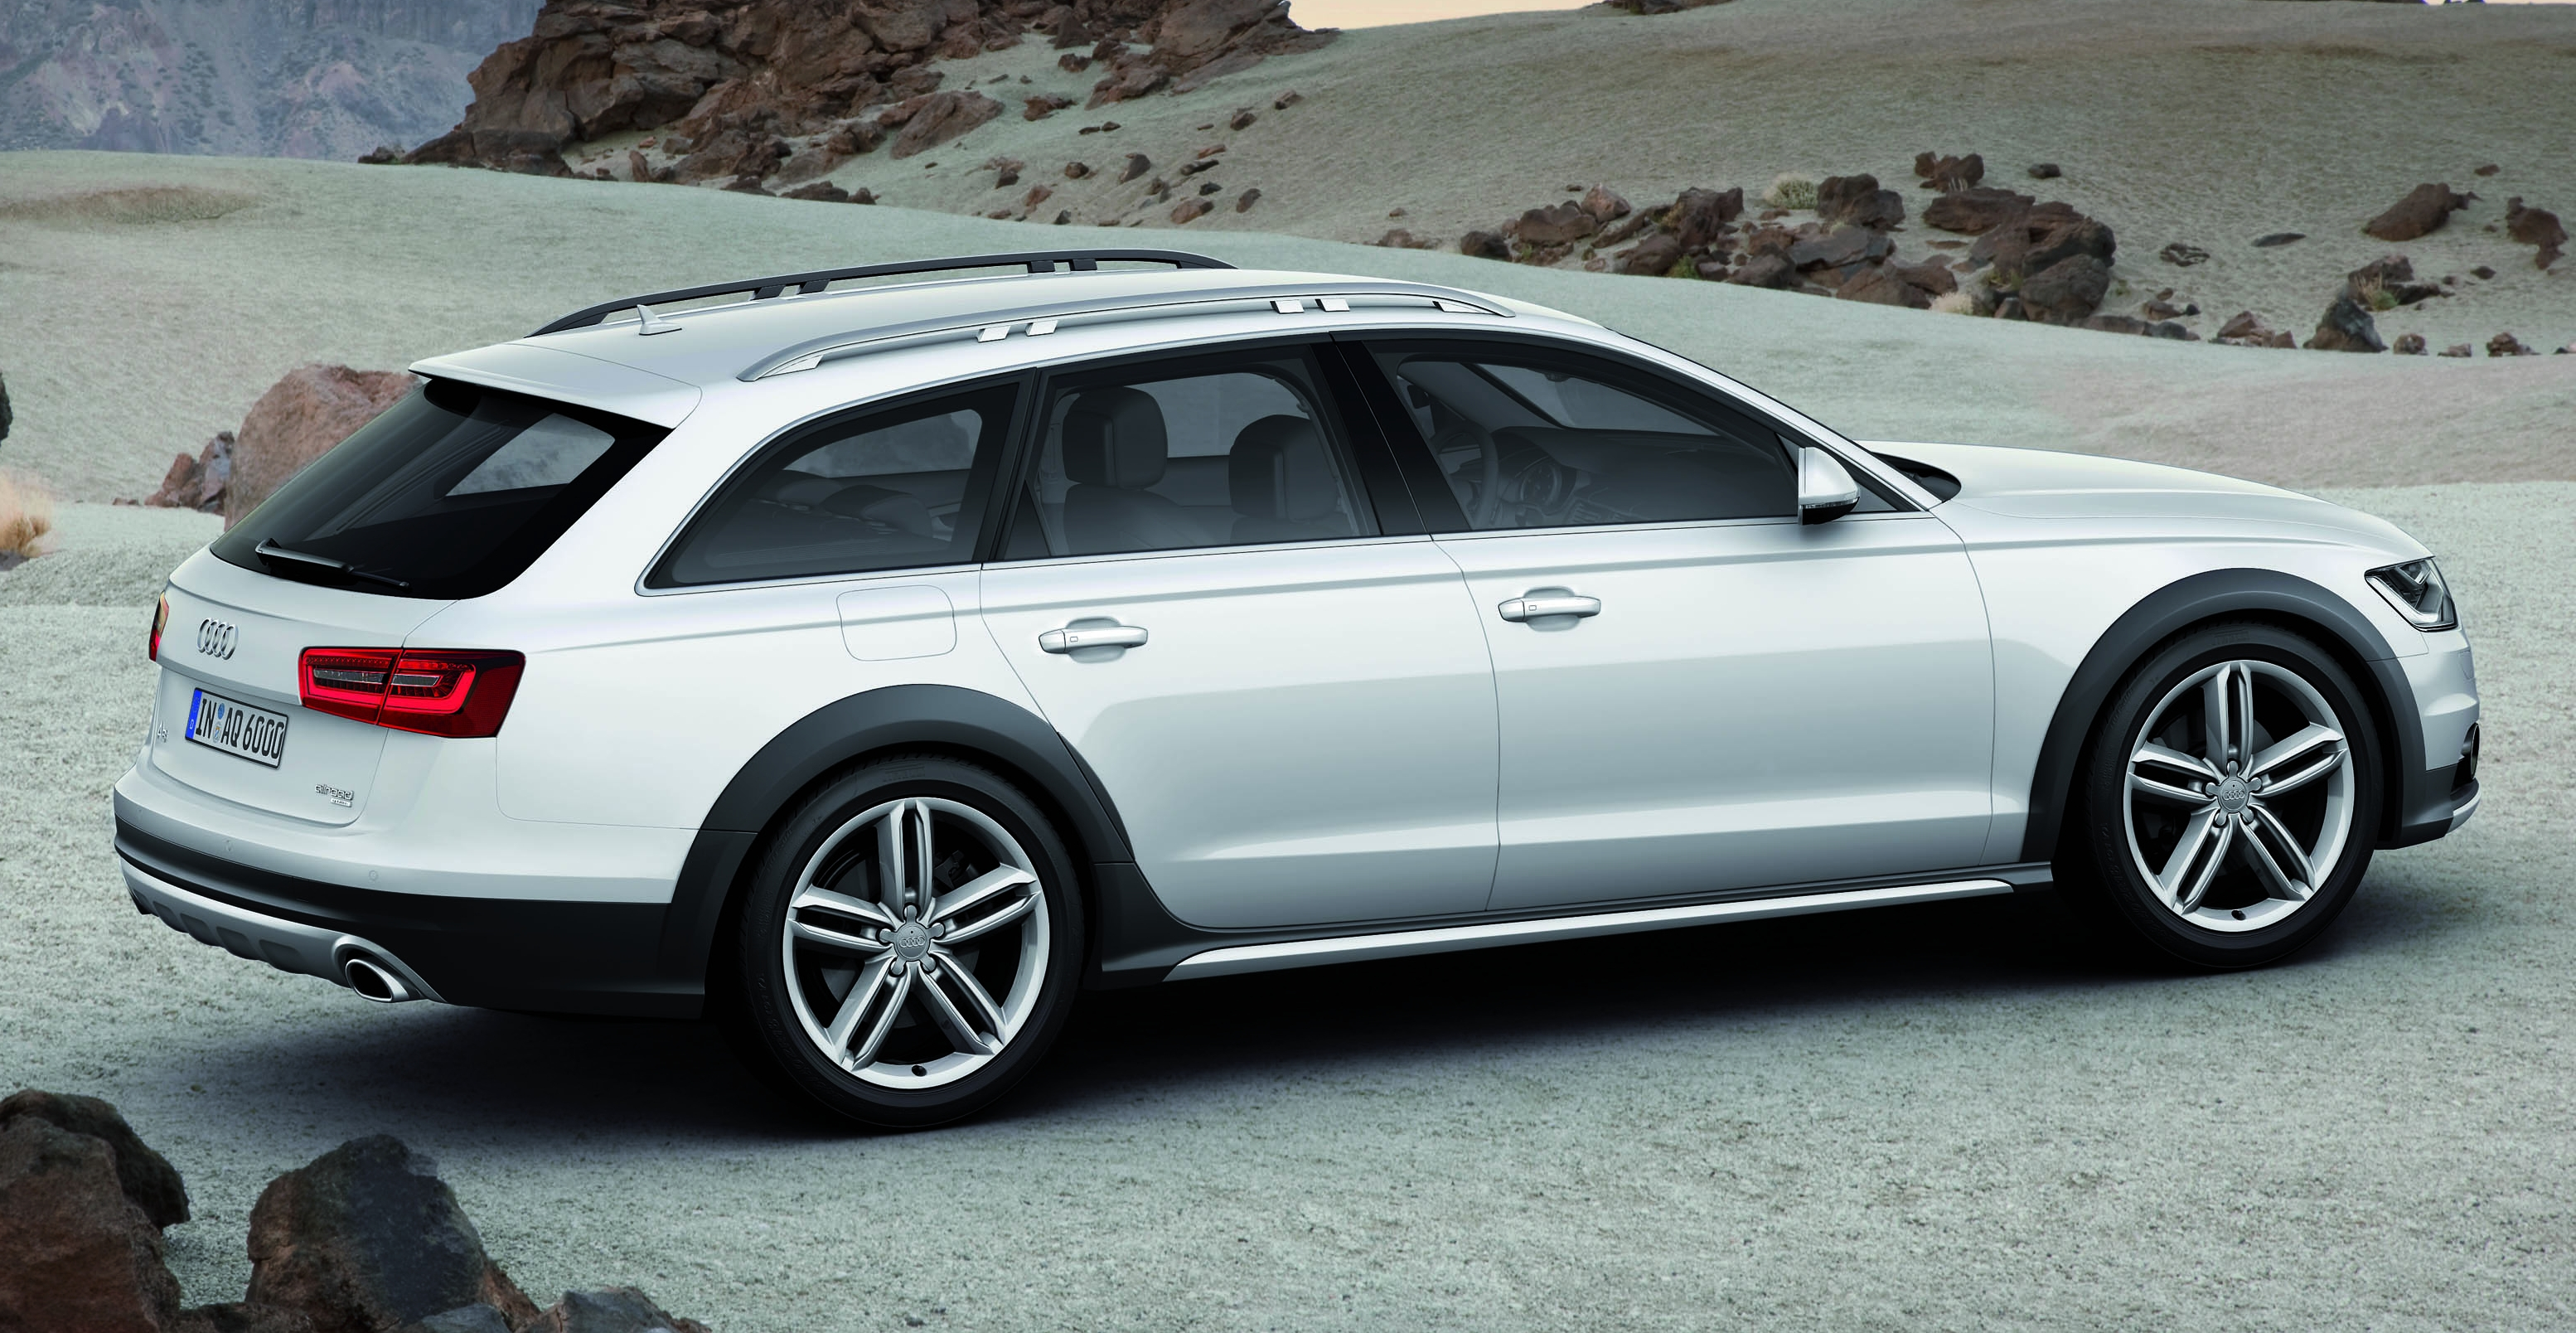 Audi A6 Allroad Quattro The Avant That Drives On All